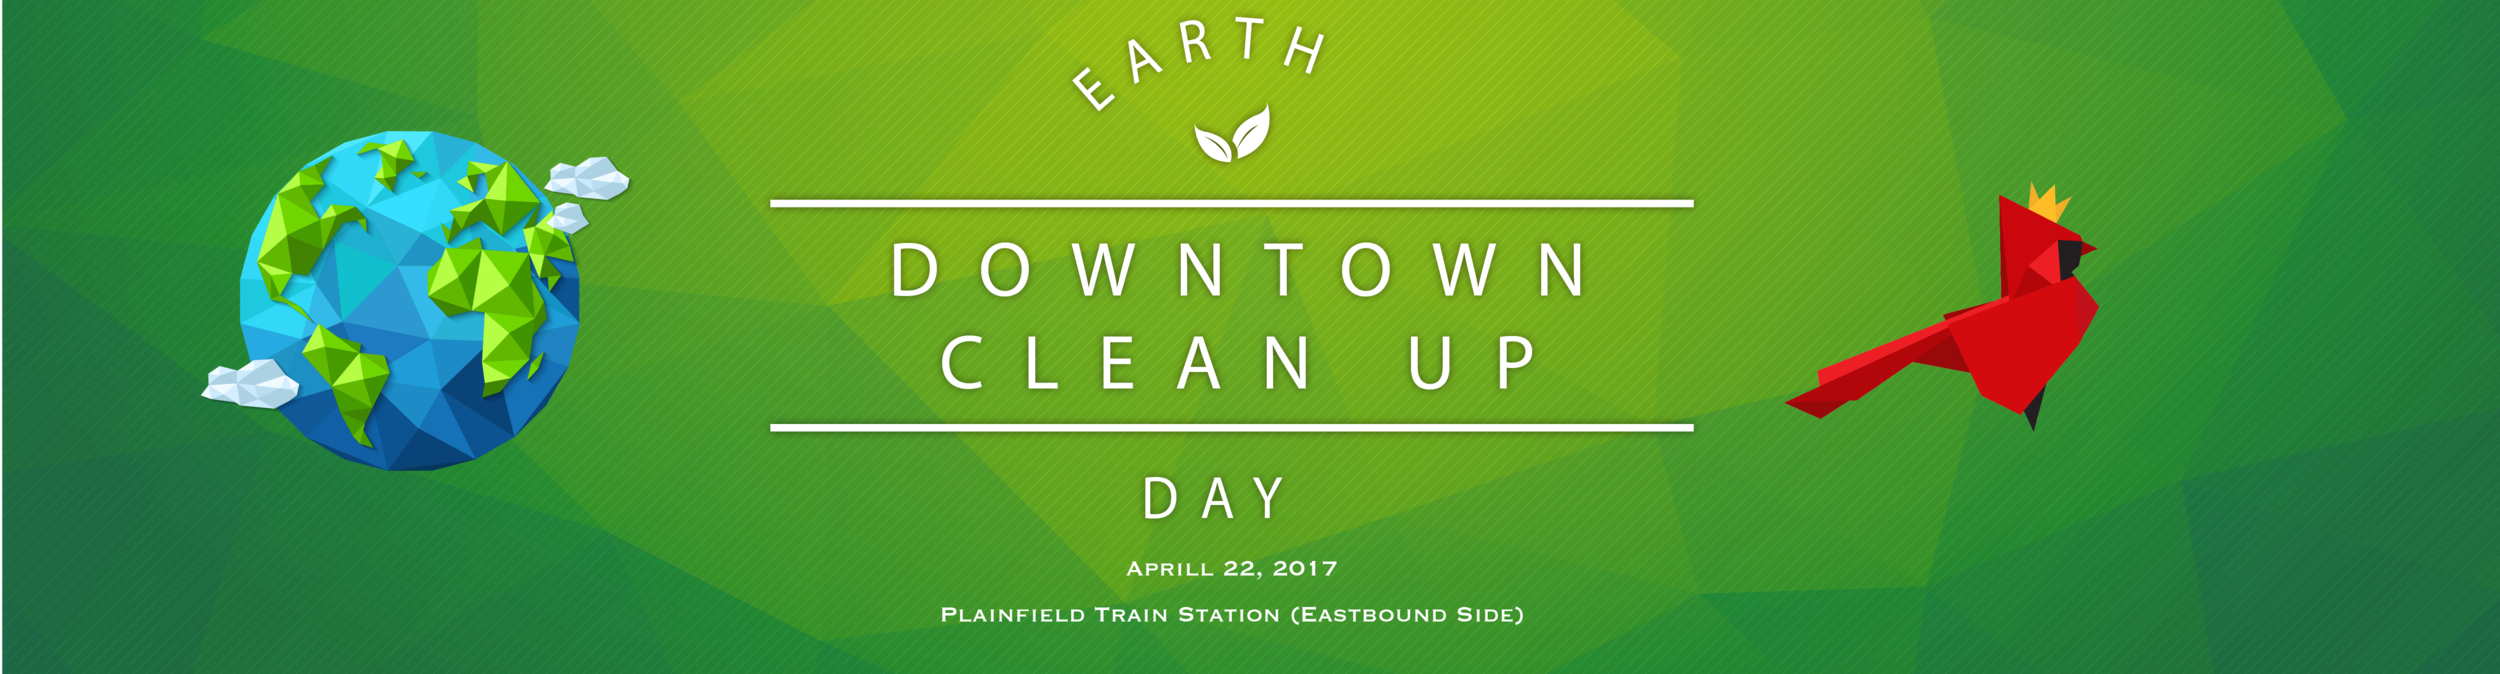 Downtown Cleanup Banner-02.png